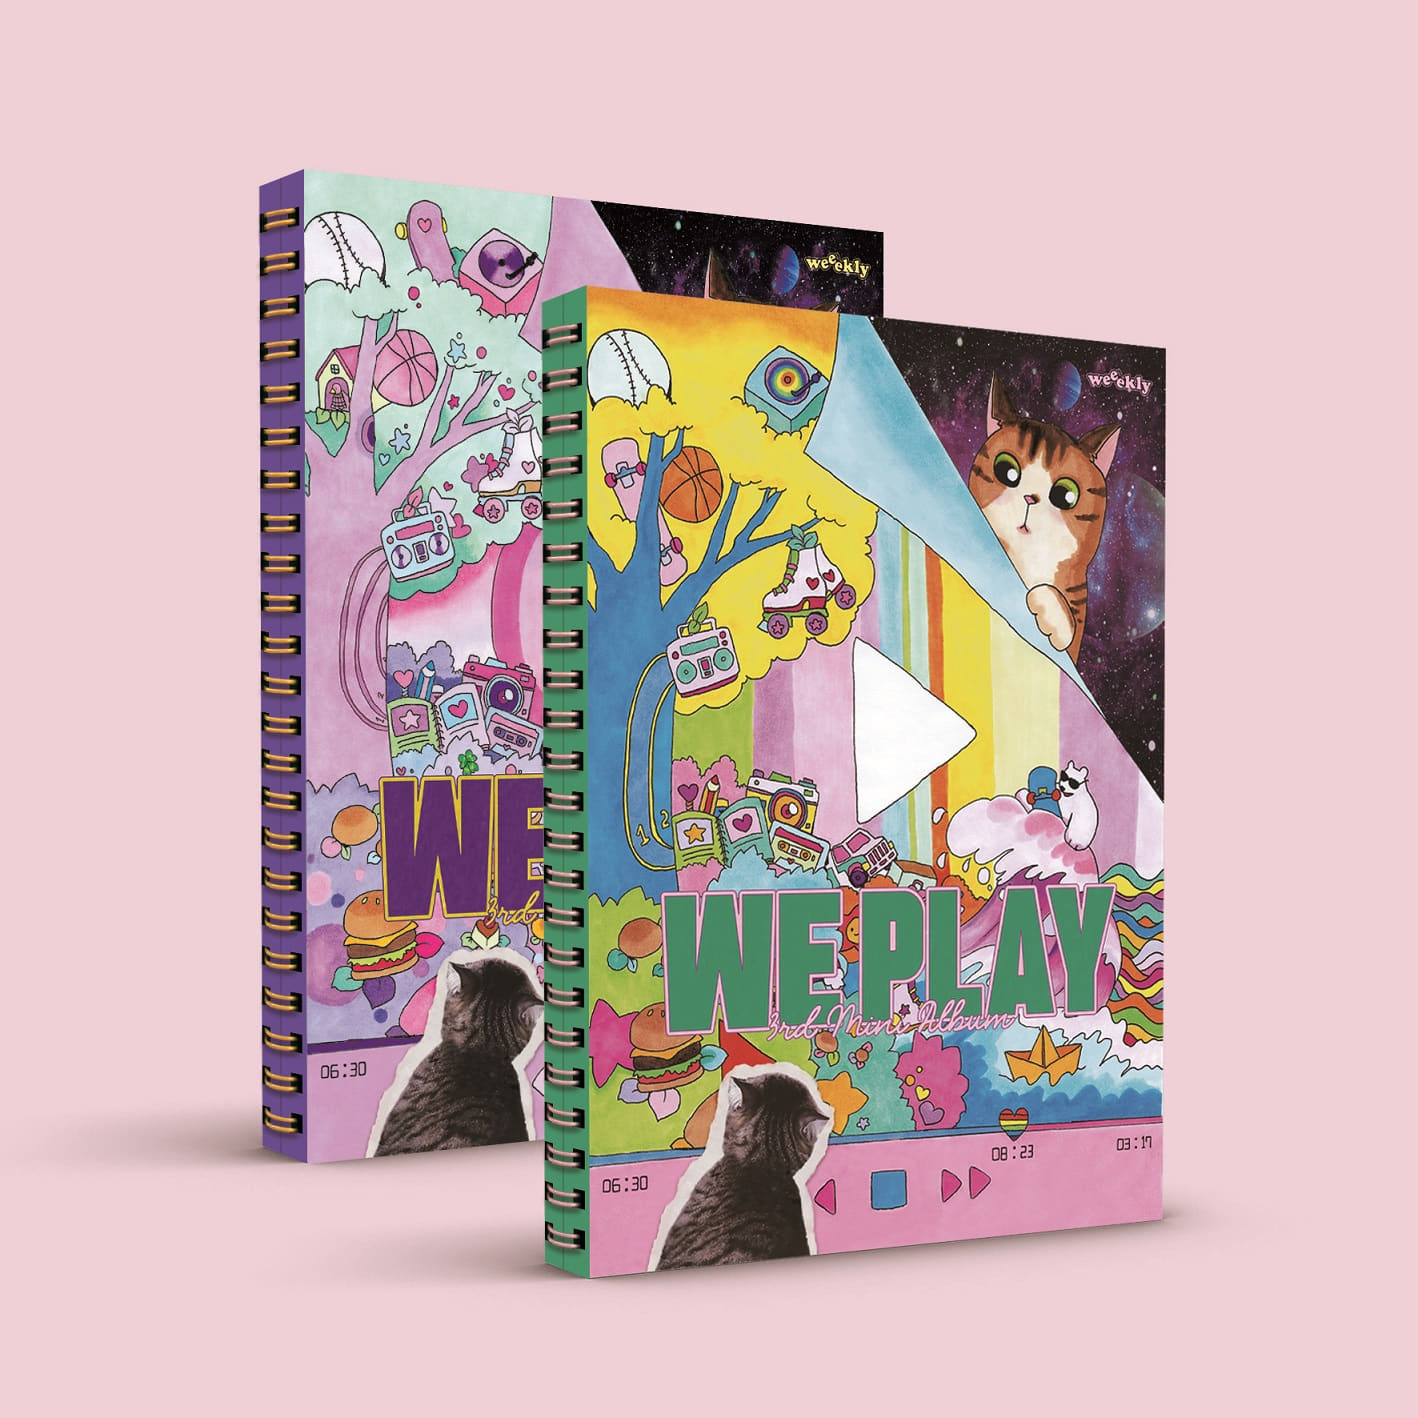 [PRE-ORDER] Weeekly - Mini Album Vol.3 [We play] (2CD SET)케이팝스토어(kpop store)